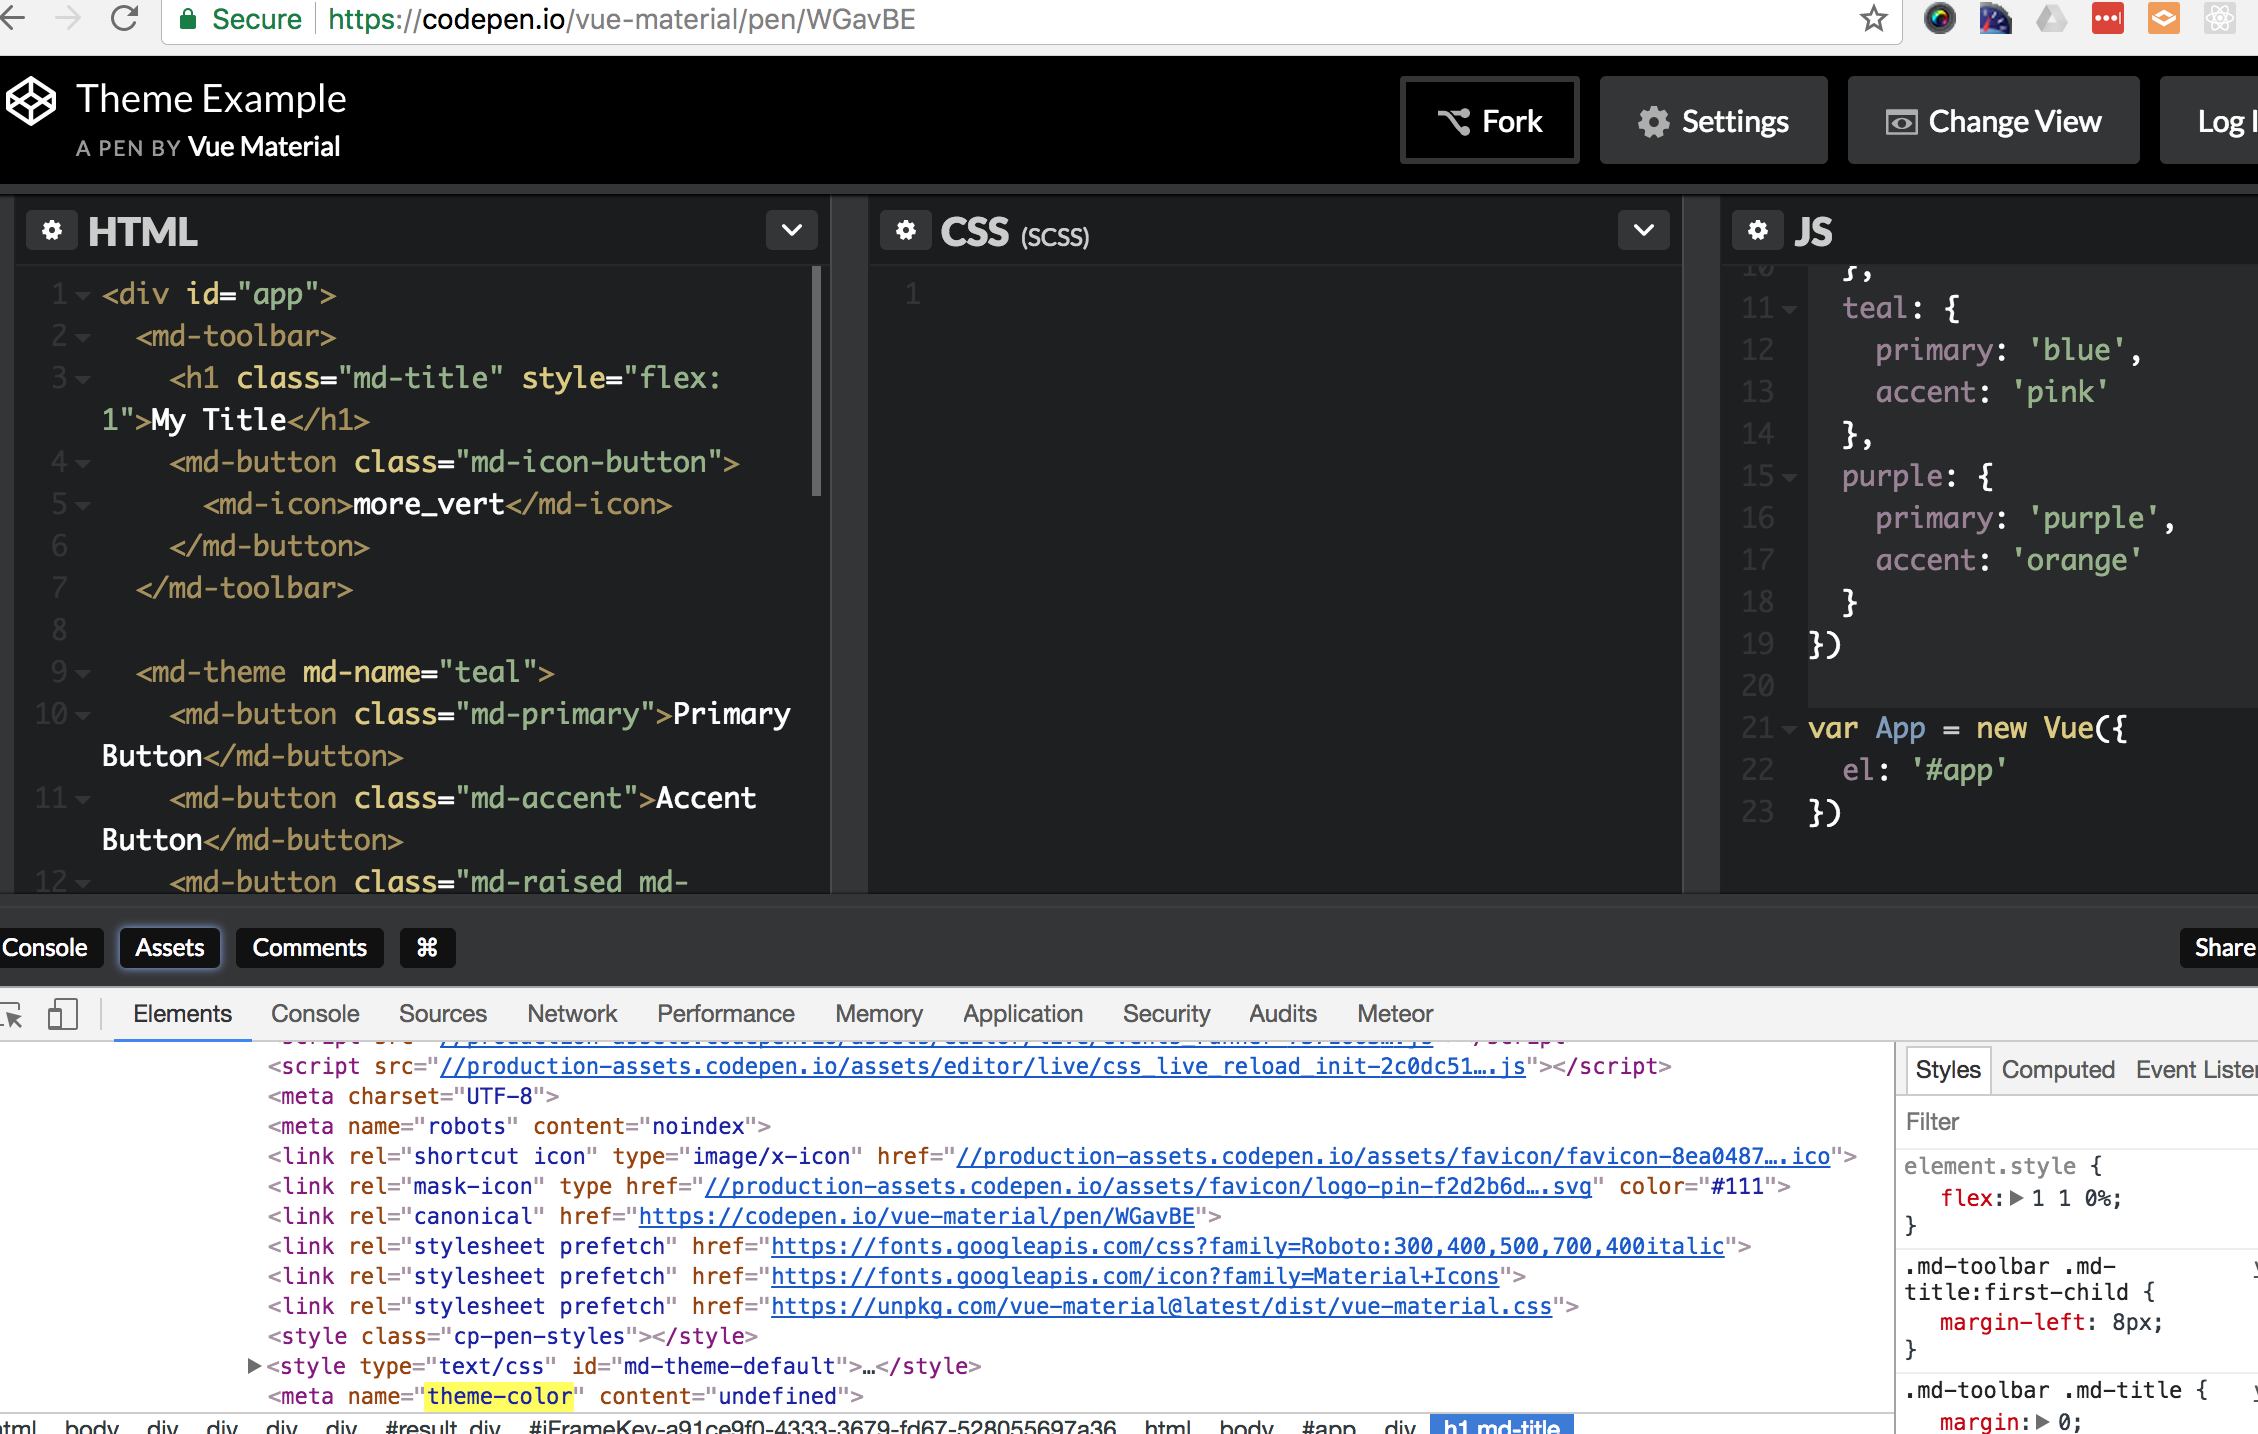 theme-color html tag overridden by 'undefined' · Issue #1139